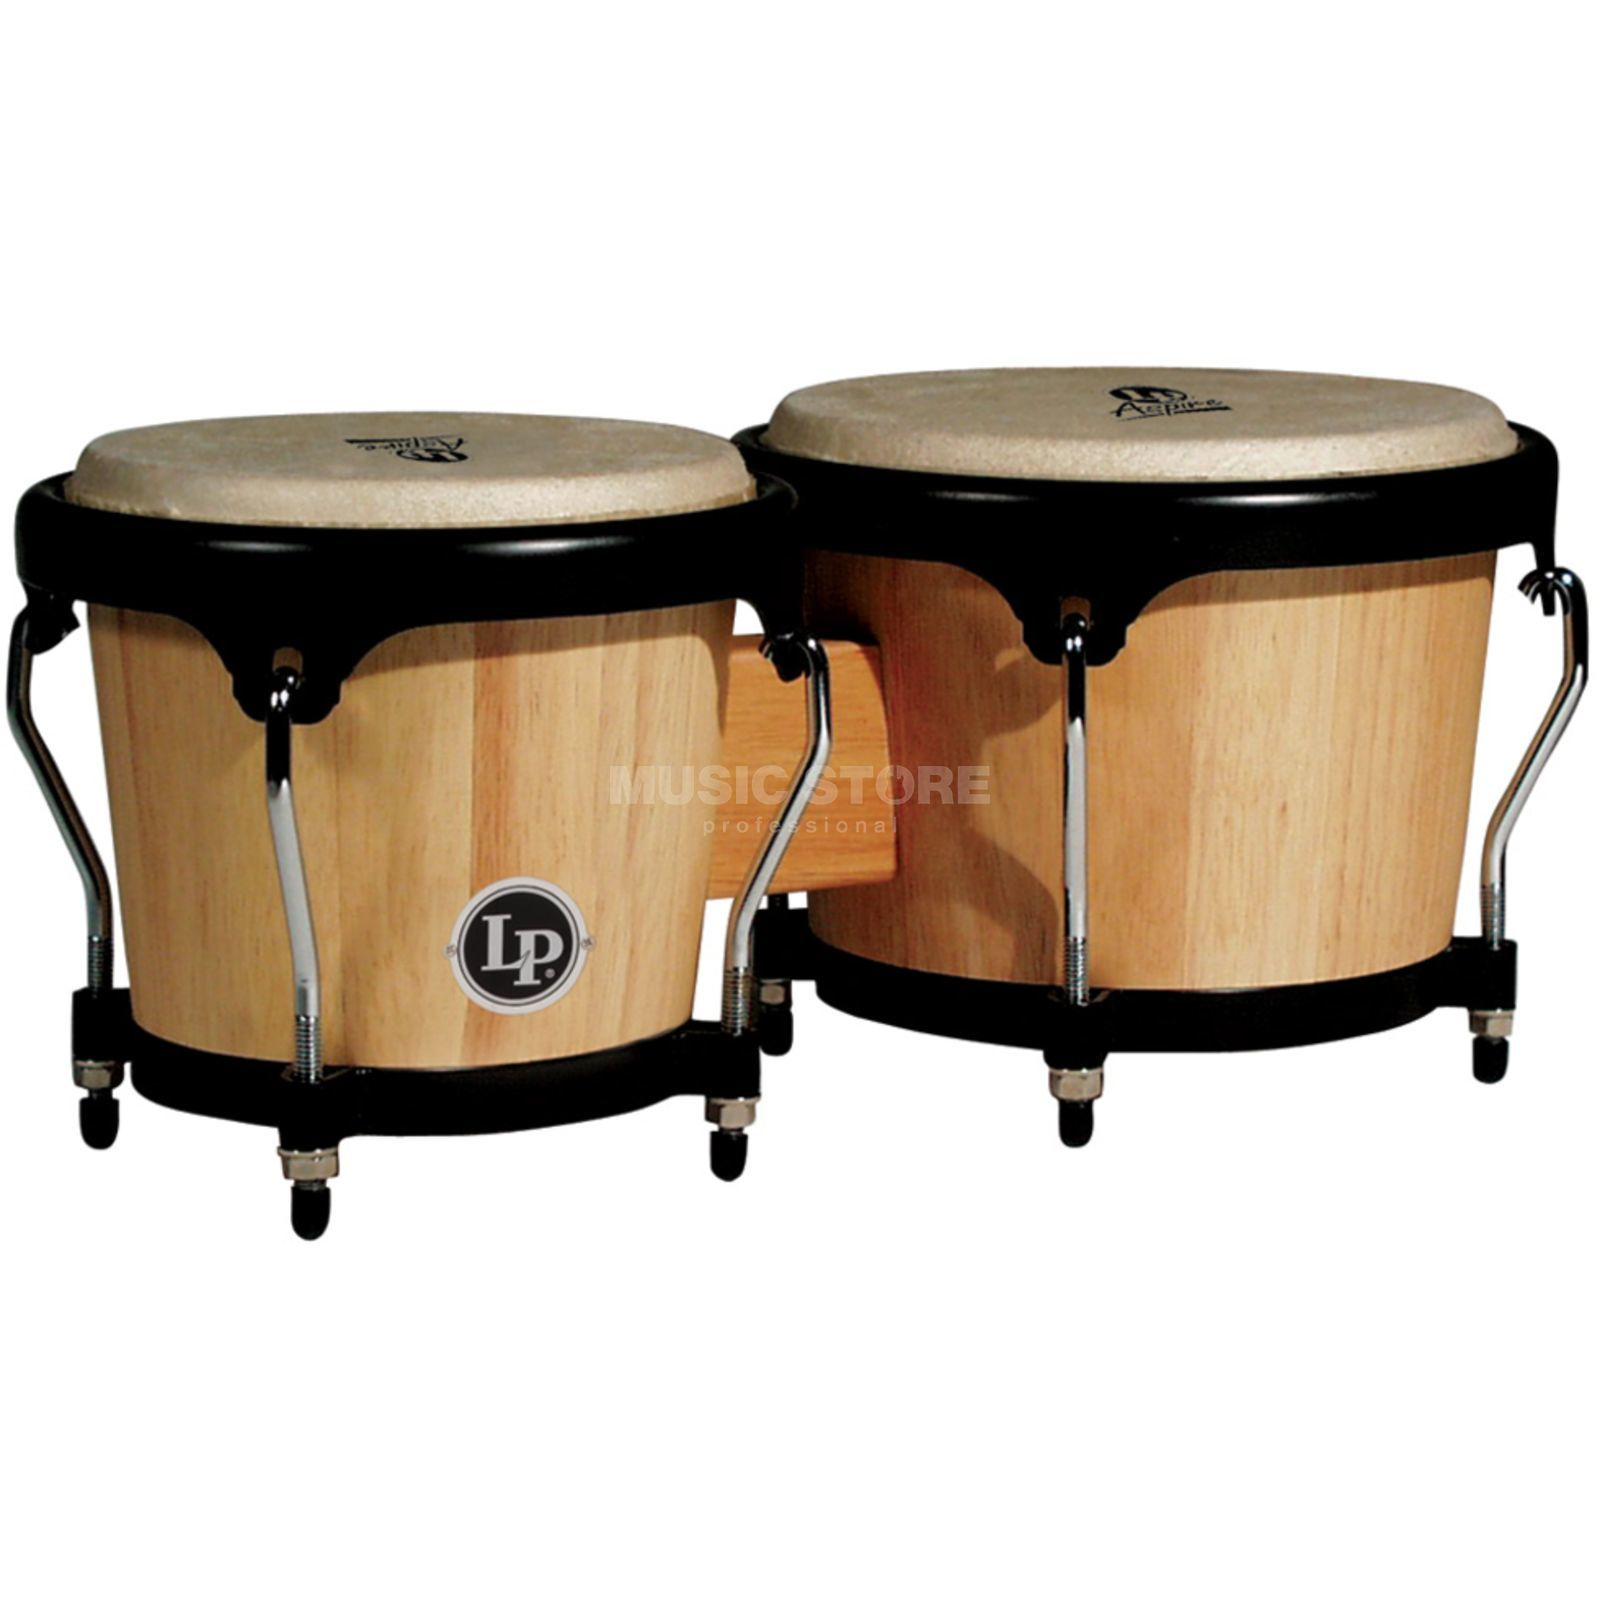 "Latin Percussion Aspire Bongos LPA601-AW, 6 3/4"" + 8"", Natural Wood #AW Produktbillede"